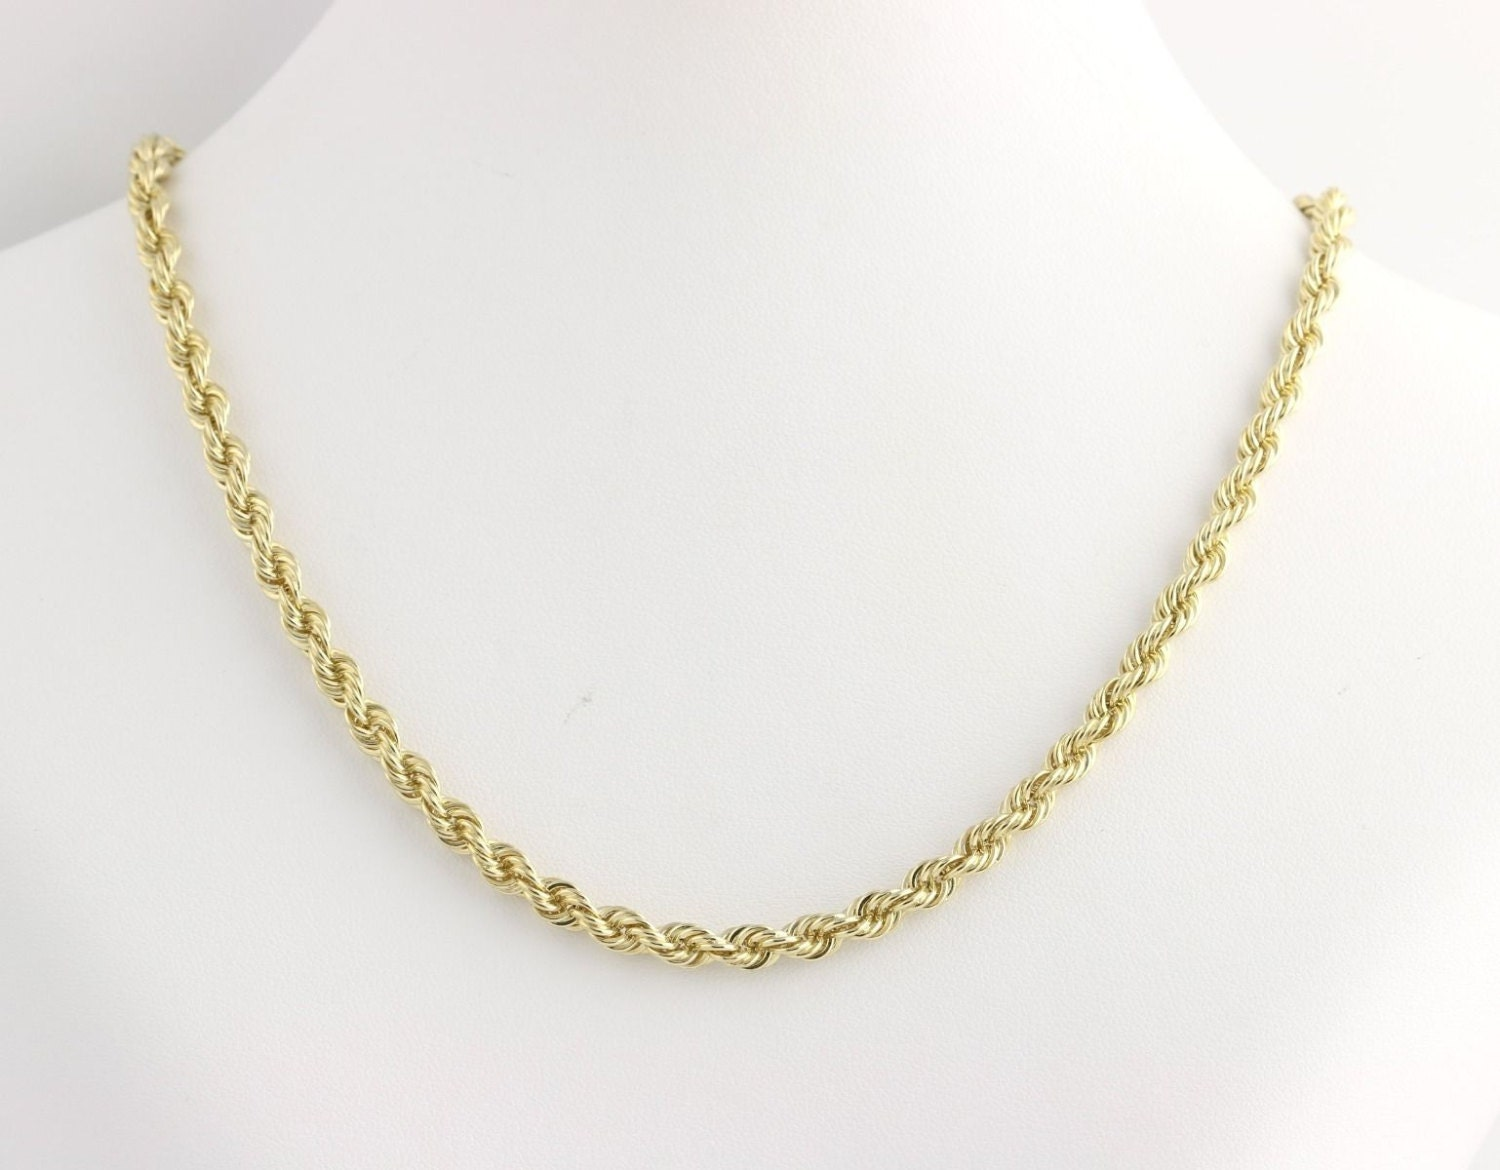 rope chain necklace 20 25 14k yellow gold s by